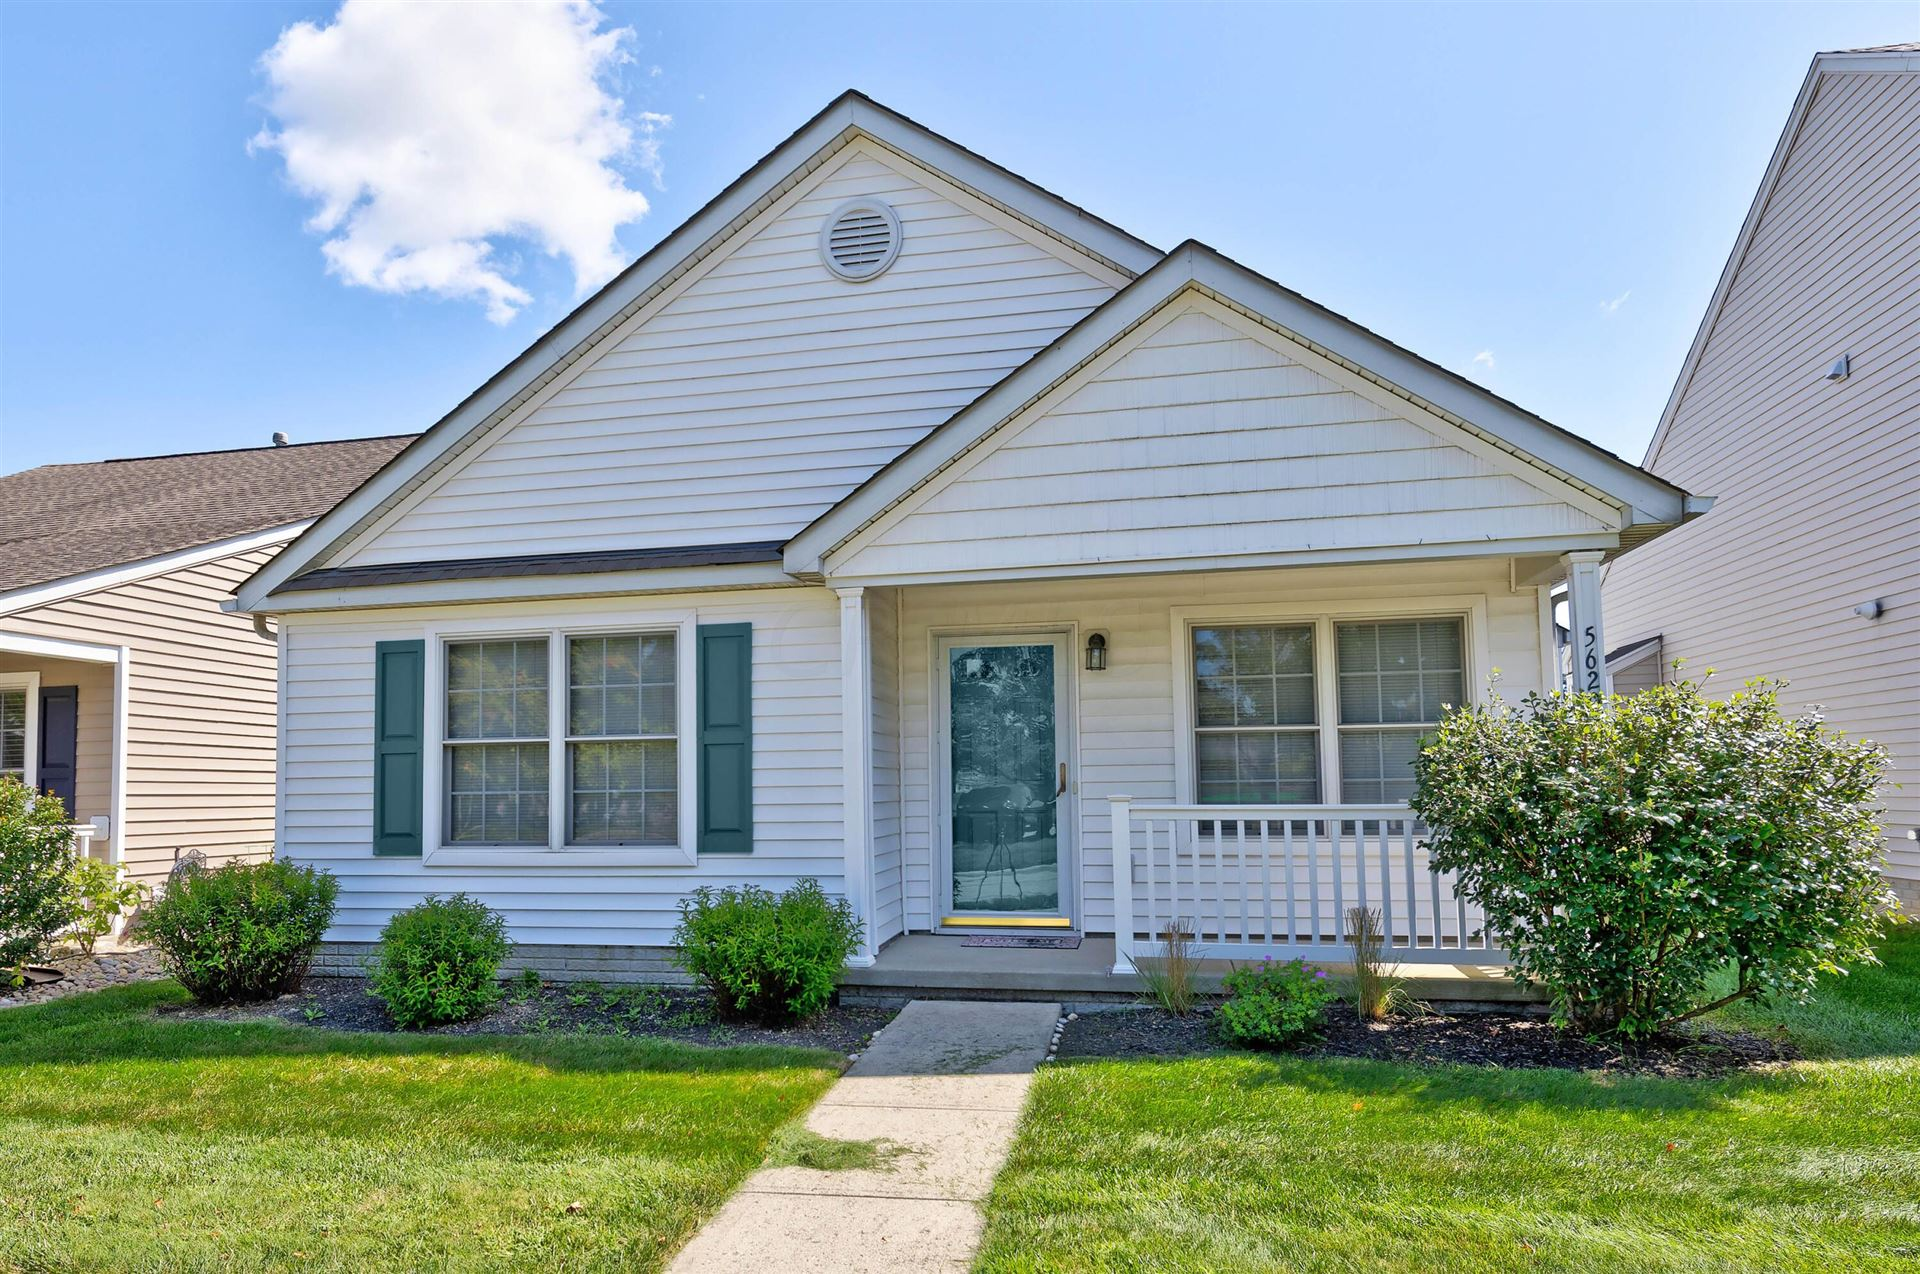 Photo of 5620 Caledonia Drive, Westerville, OH 43081 (MLS # 221035993)